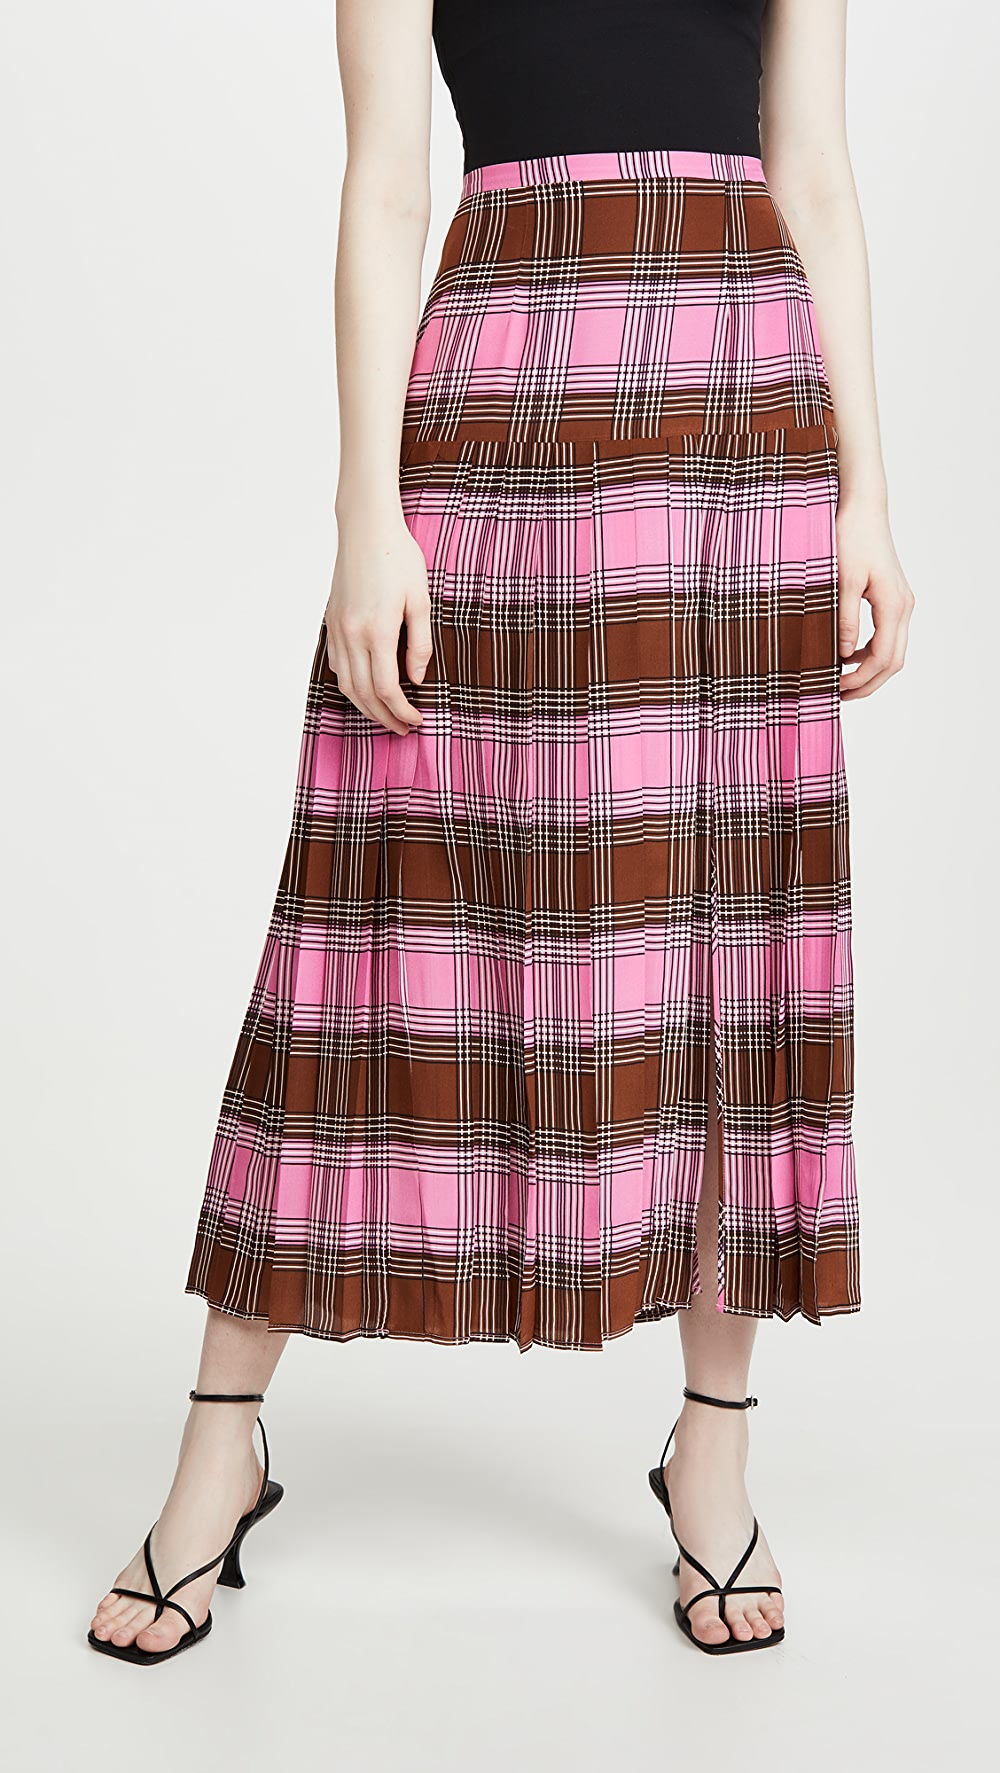 Adaptable Rixo - Tina Skirt Mild And Mellow